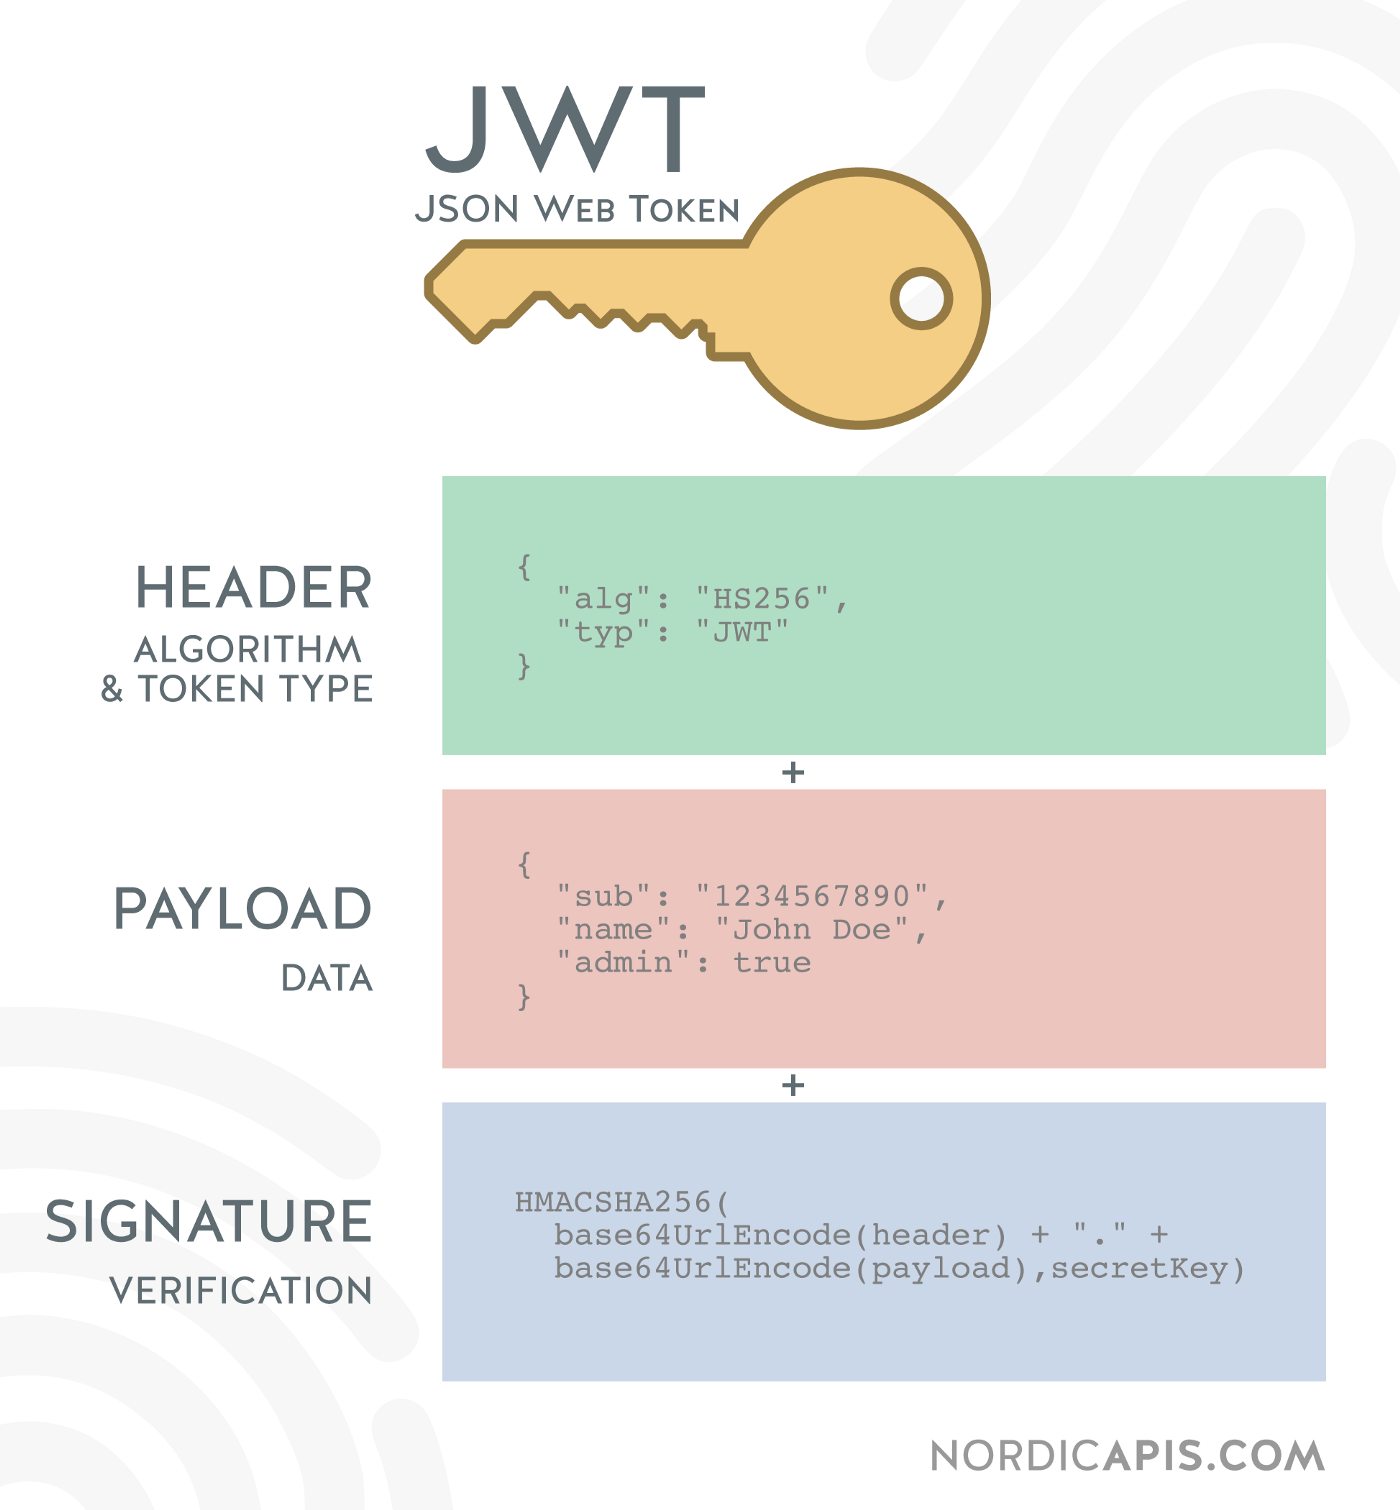 https://nordicapis.com/why-cant-i-just-send-jwts-without-oauth/